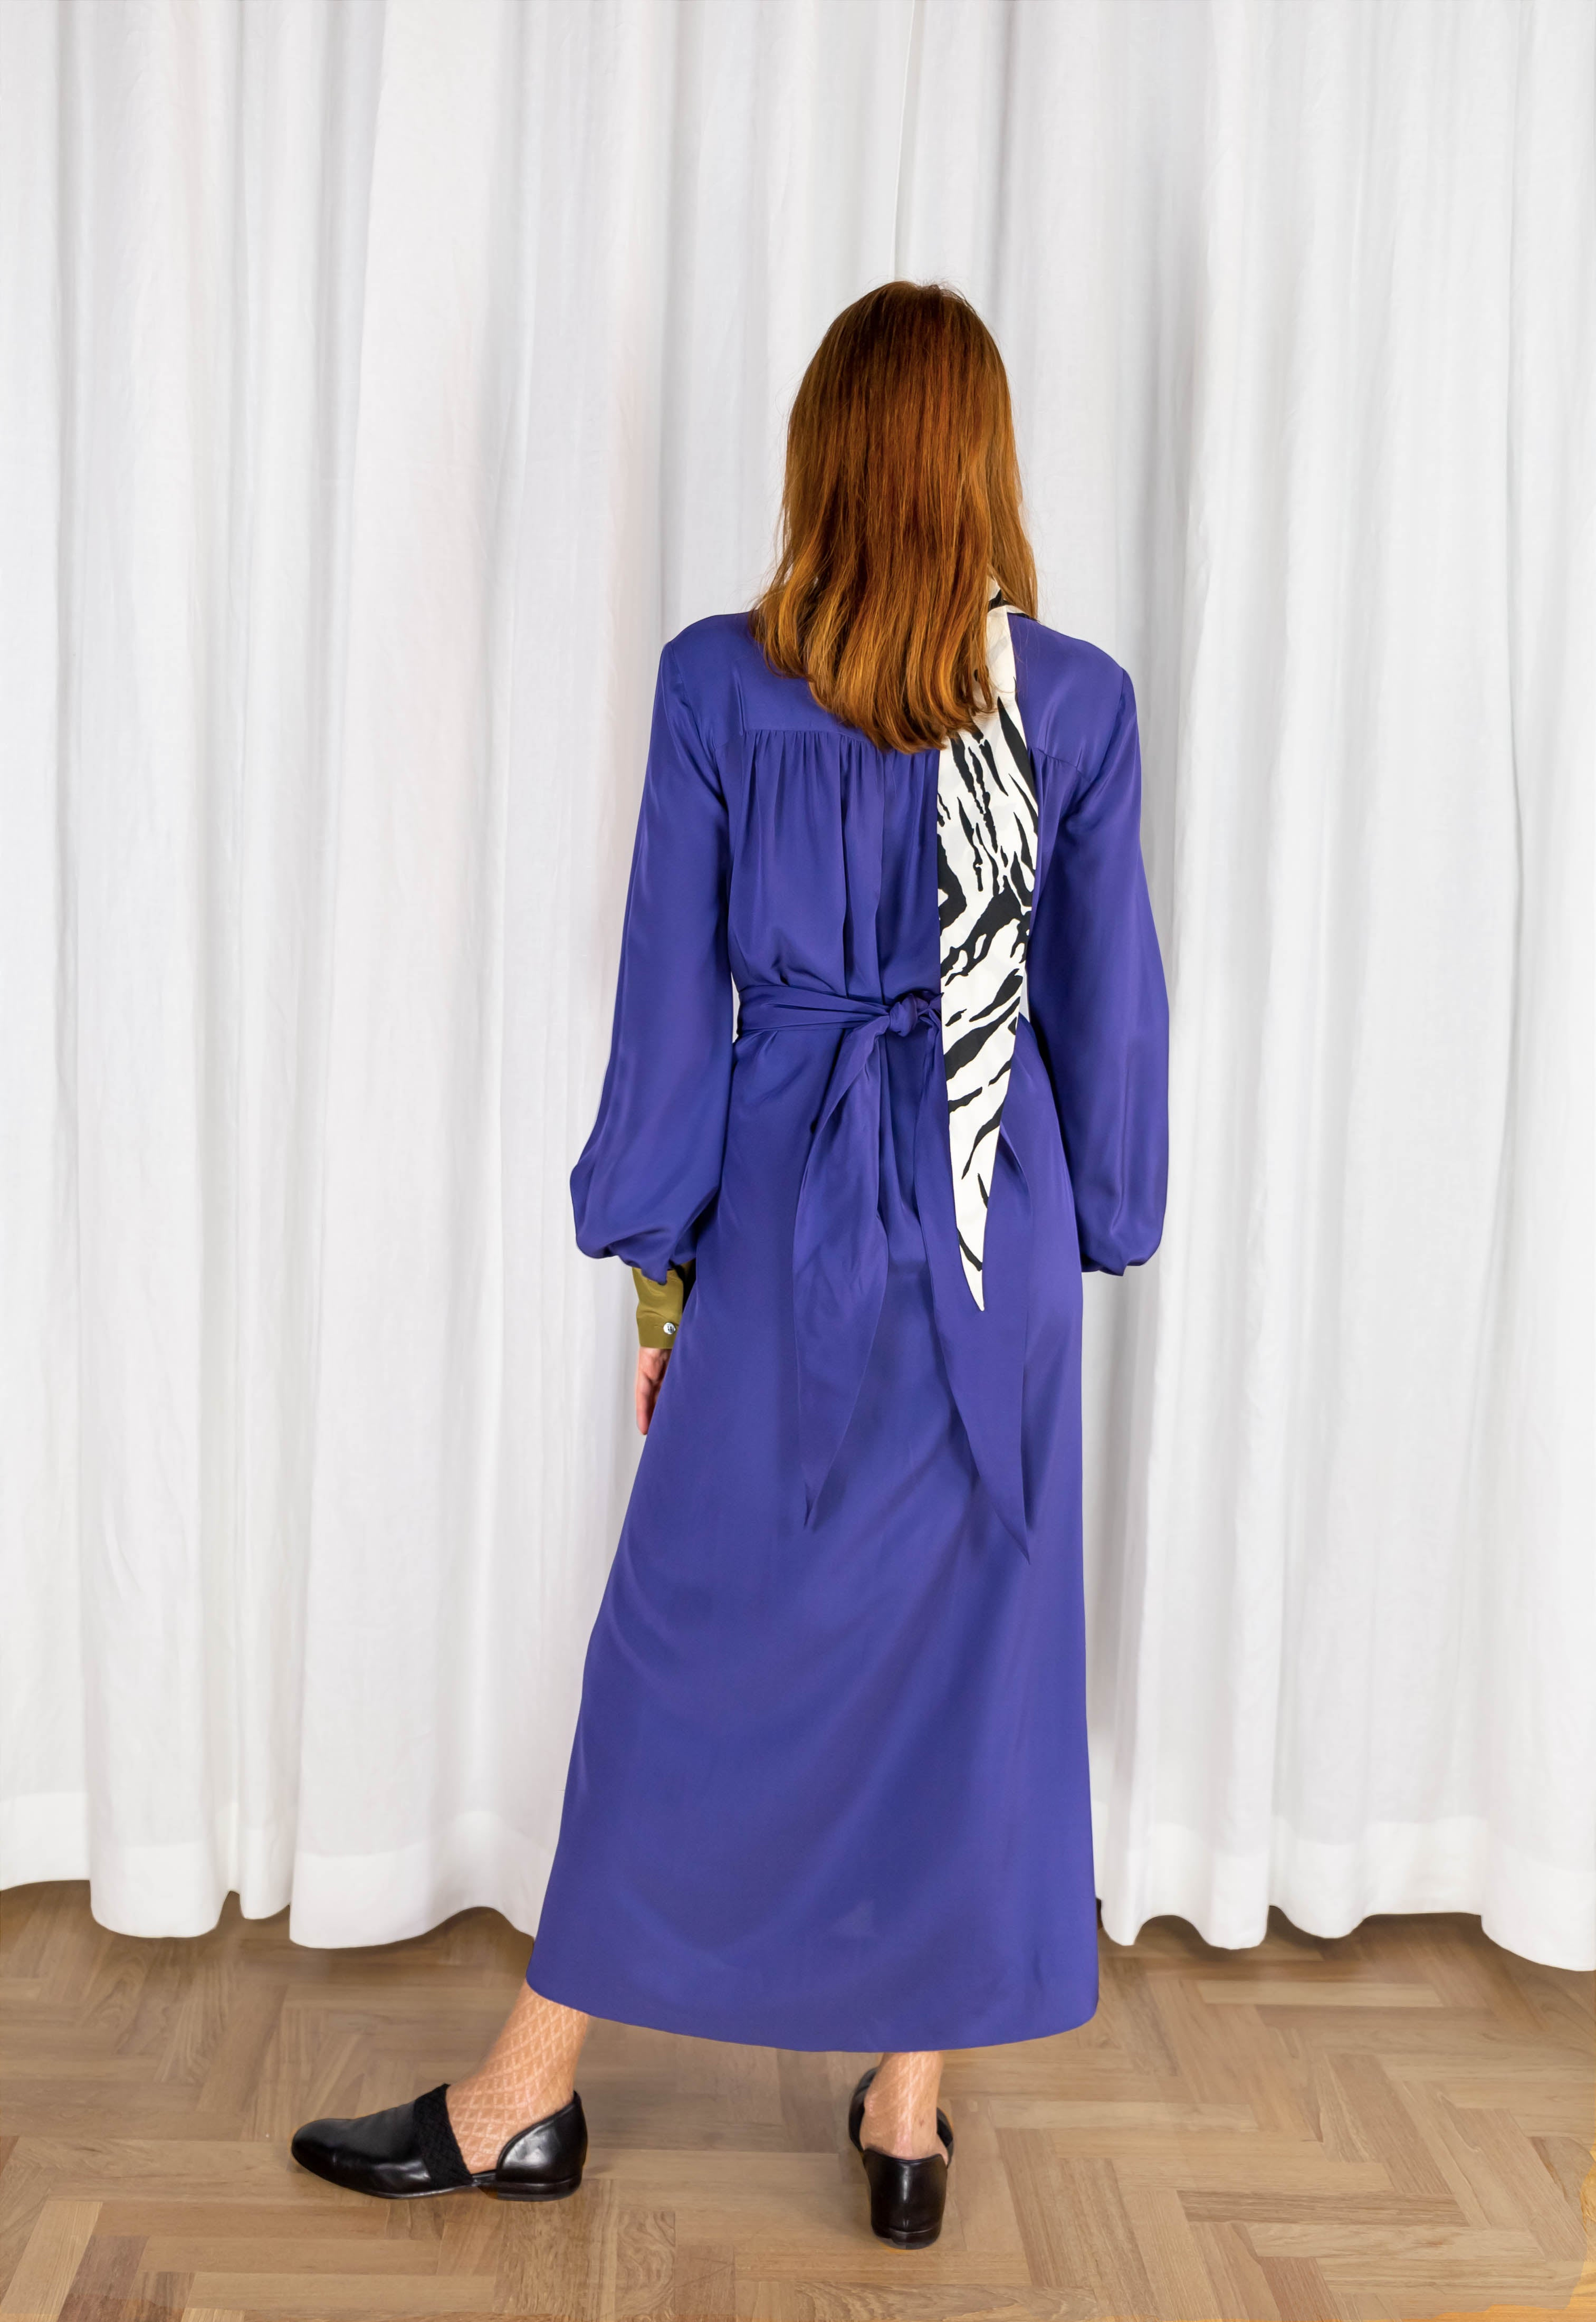 CABRIOLET MIDI DRESS - ORCHIDEA BLU VIOLET